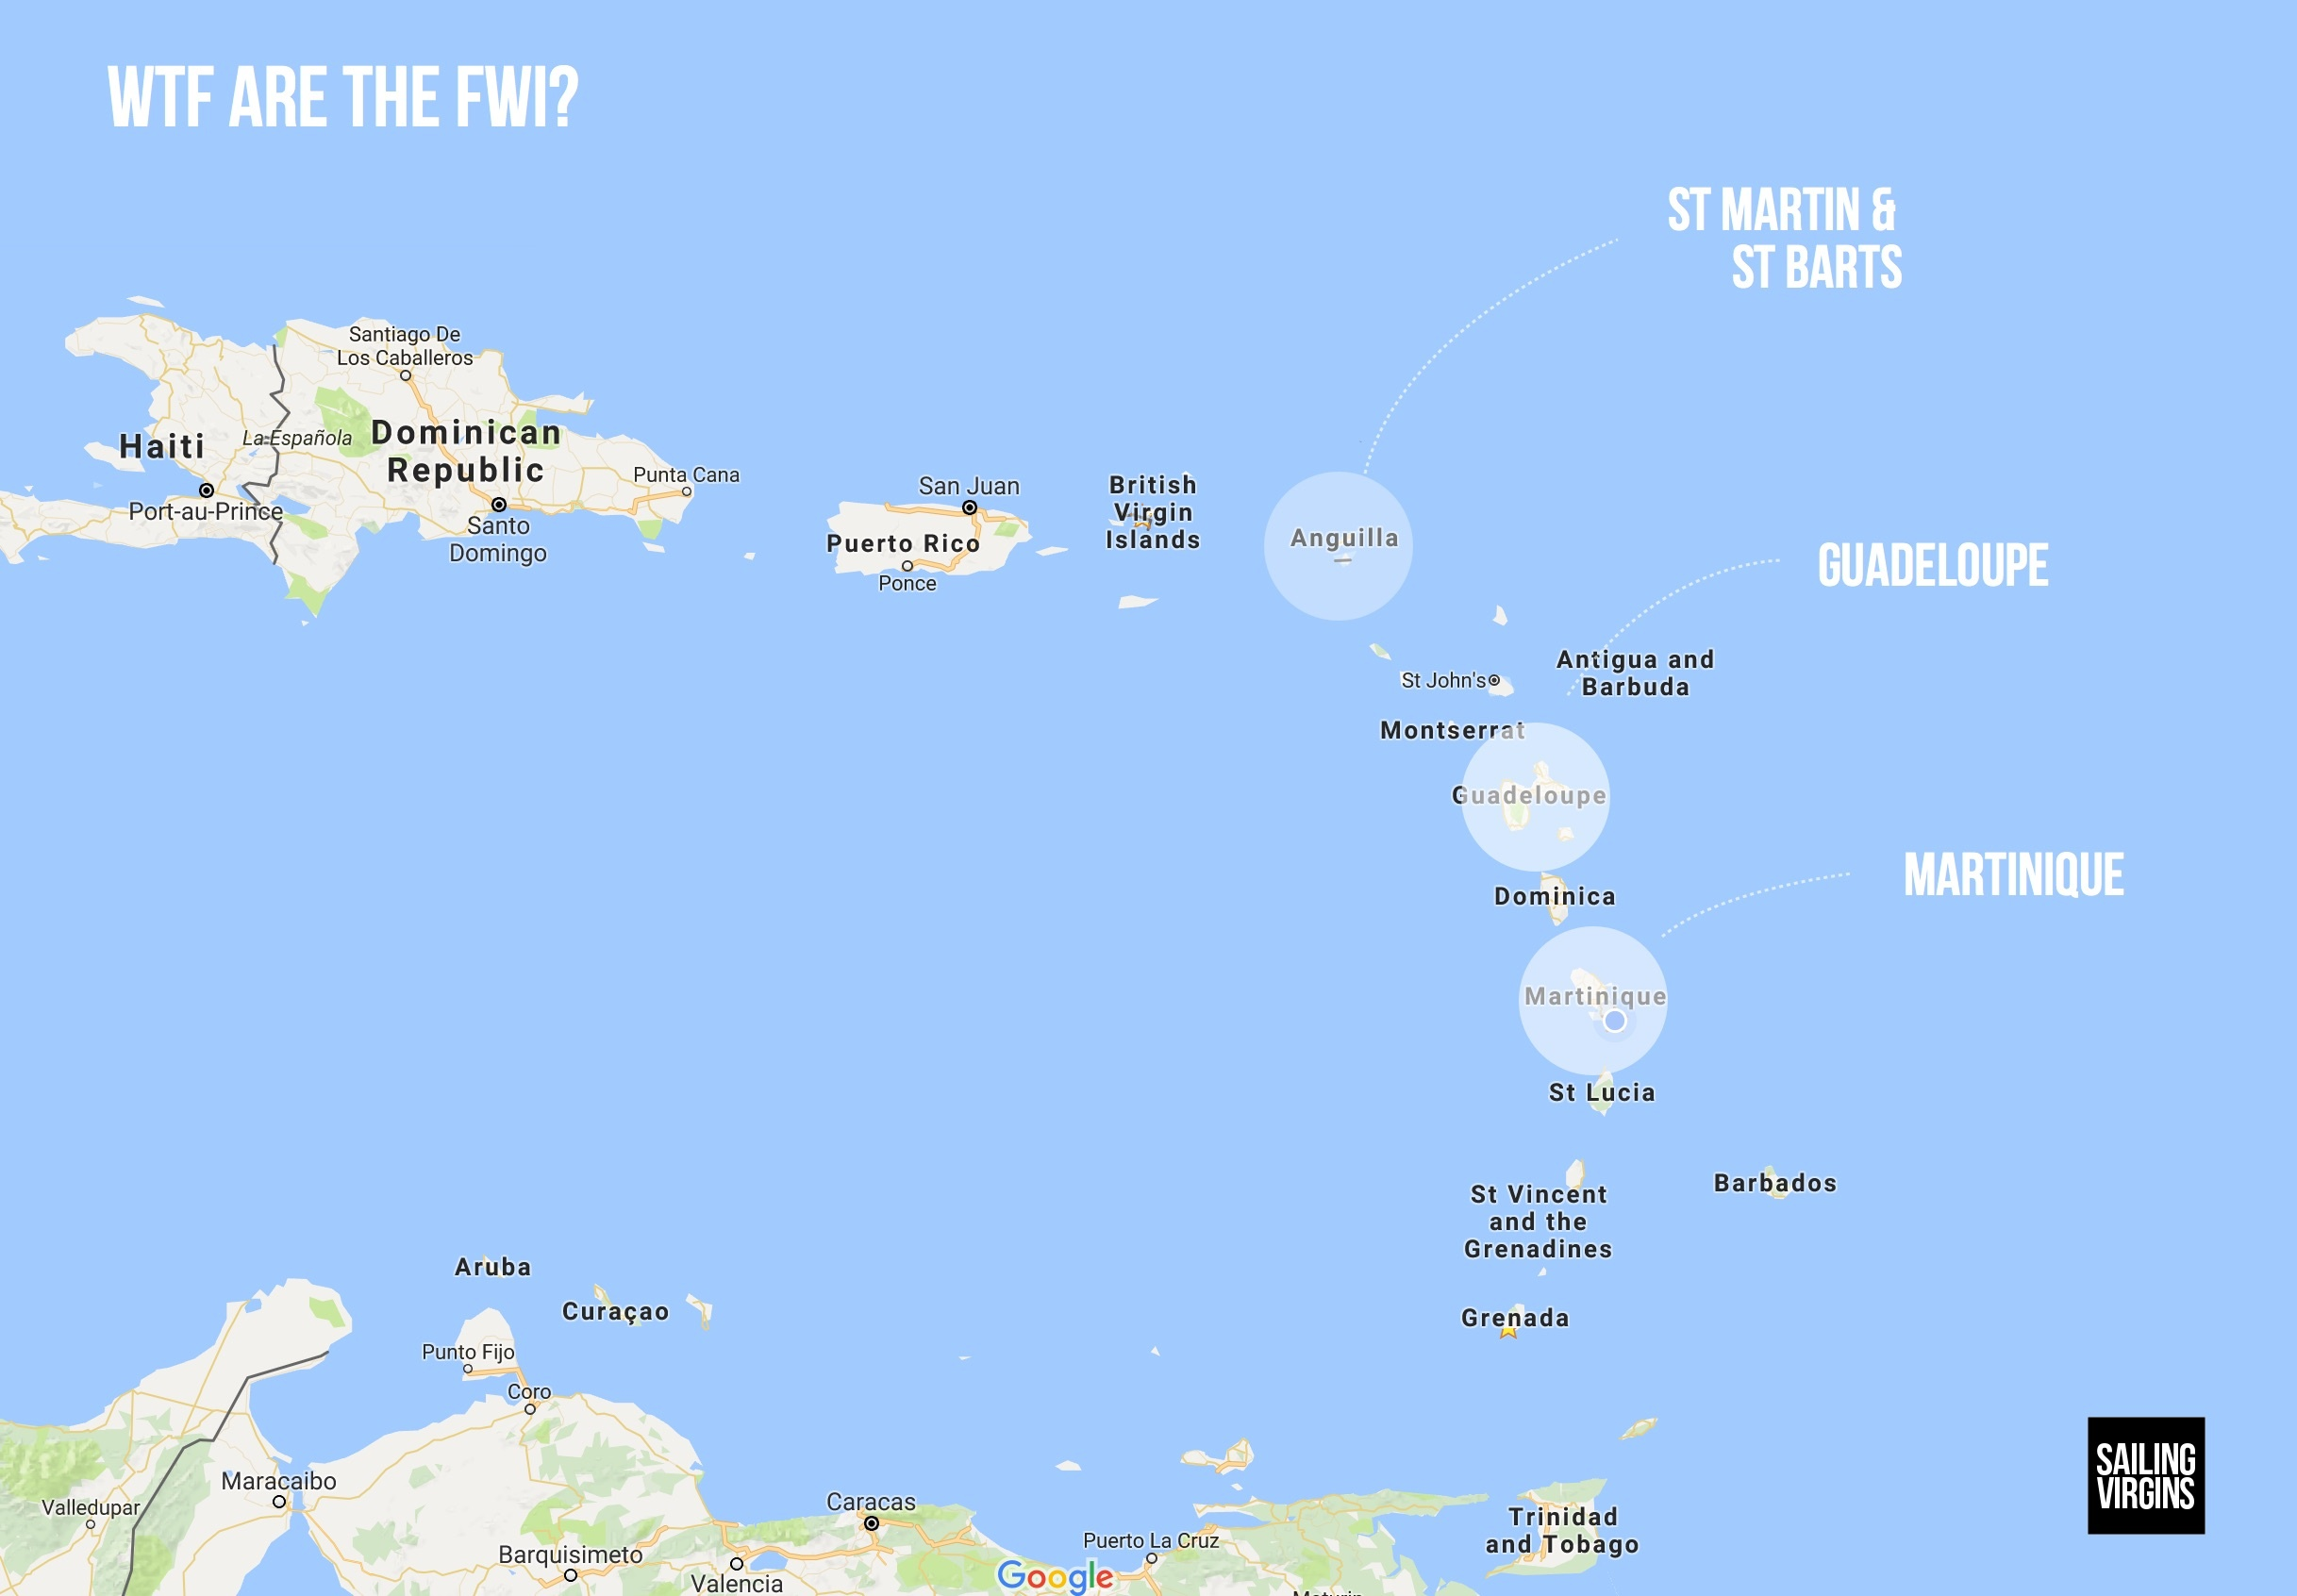 little-wtf-are-the-french-west-indies-map.jpg